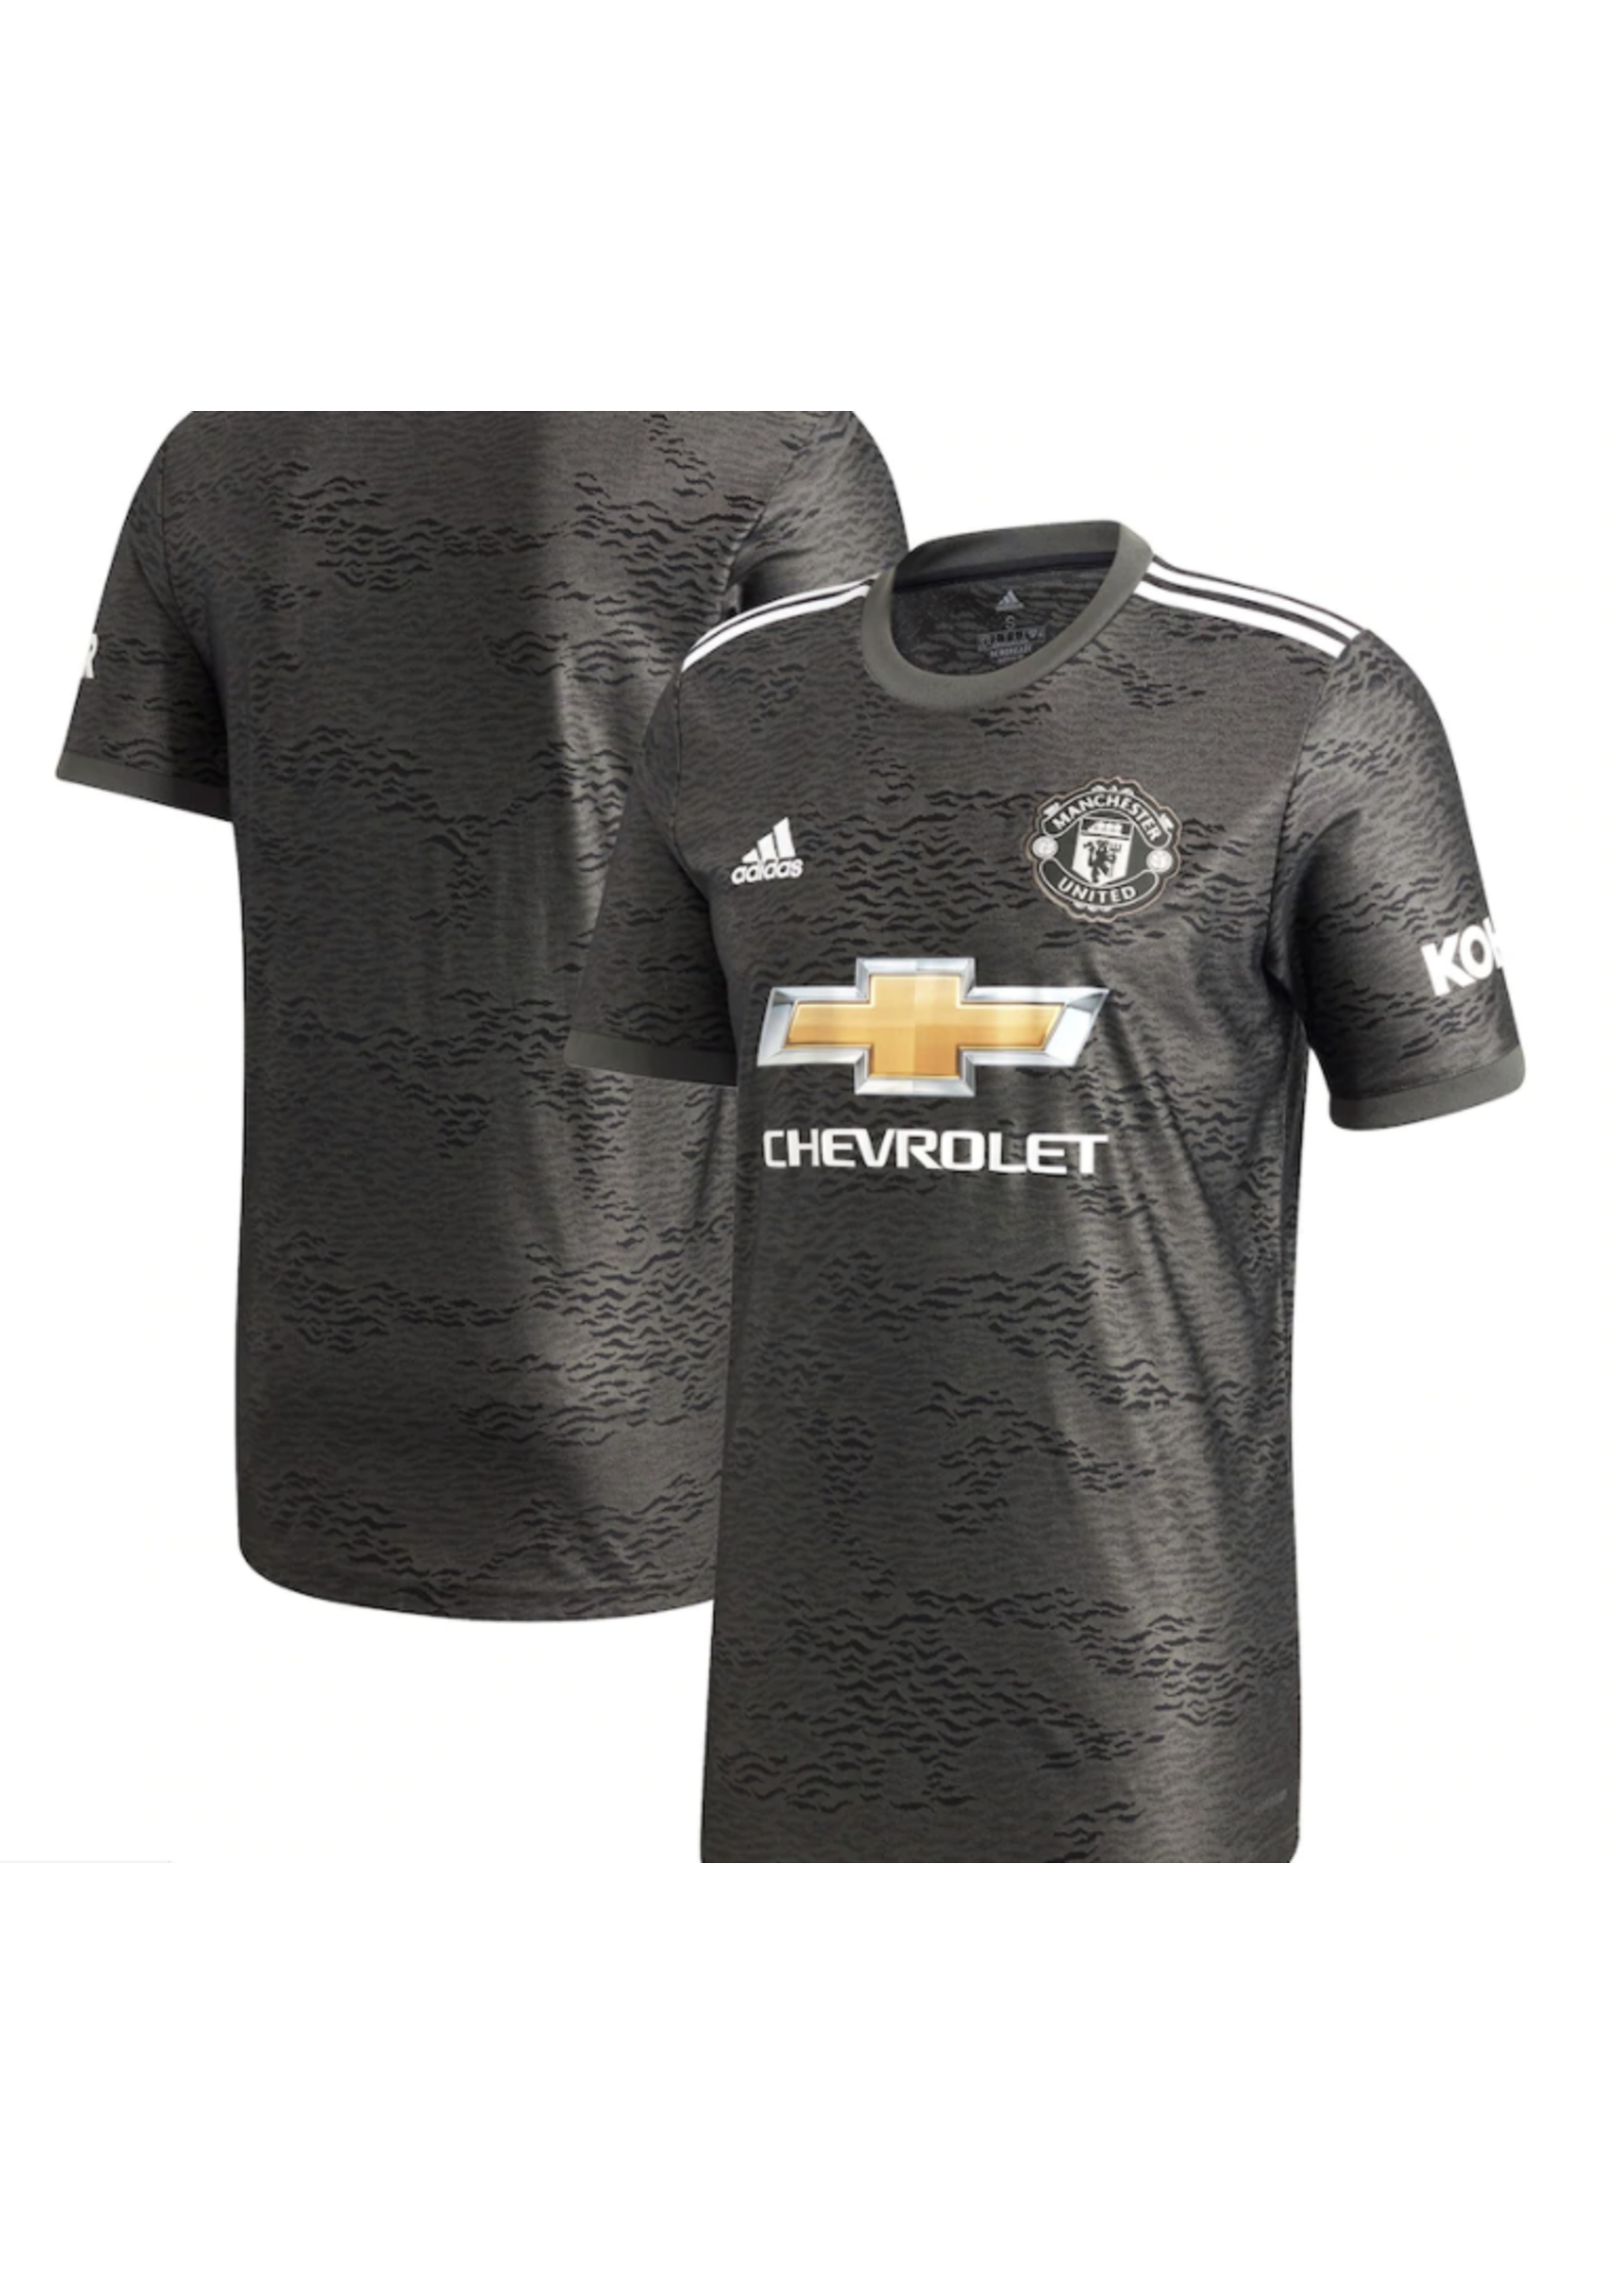 Adidas MANCHESTER UNITED AWAY JERSEY 2020/21 - YOUTH